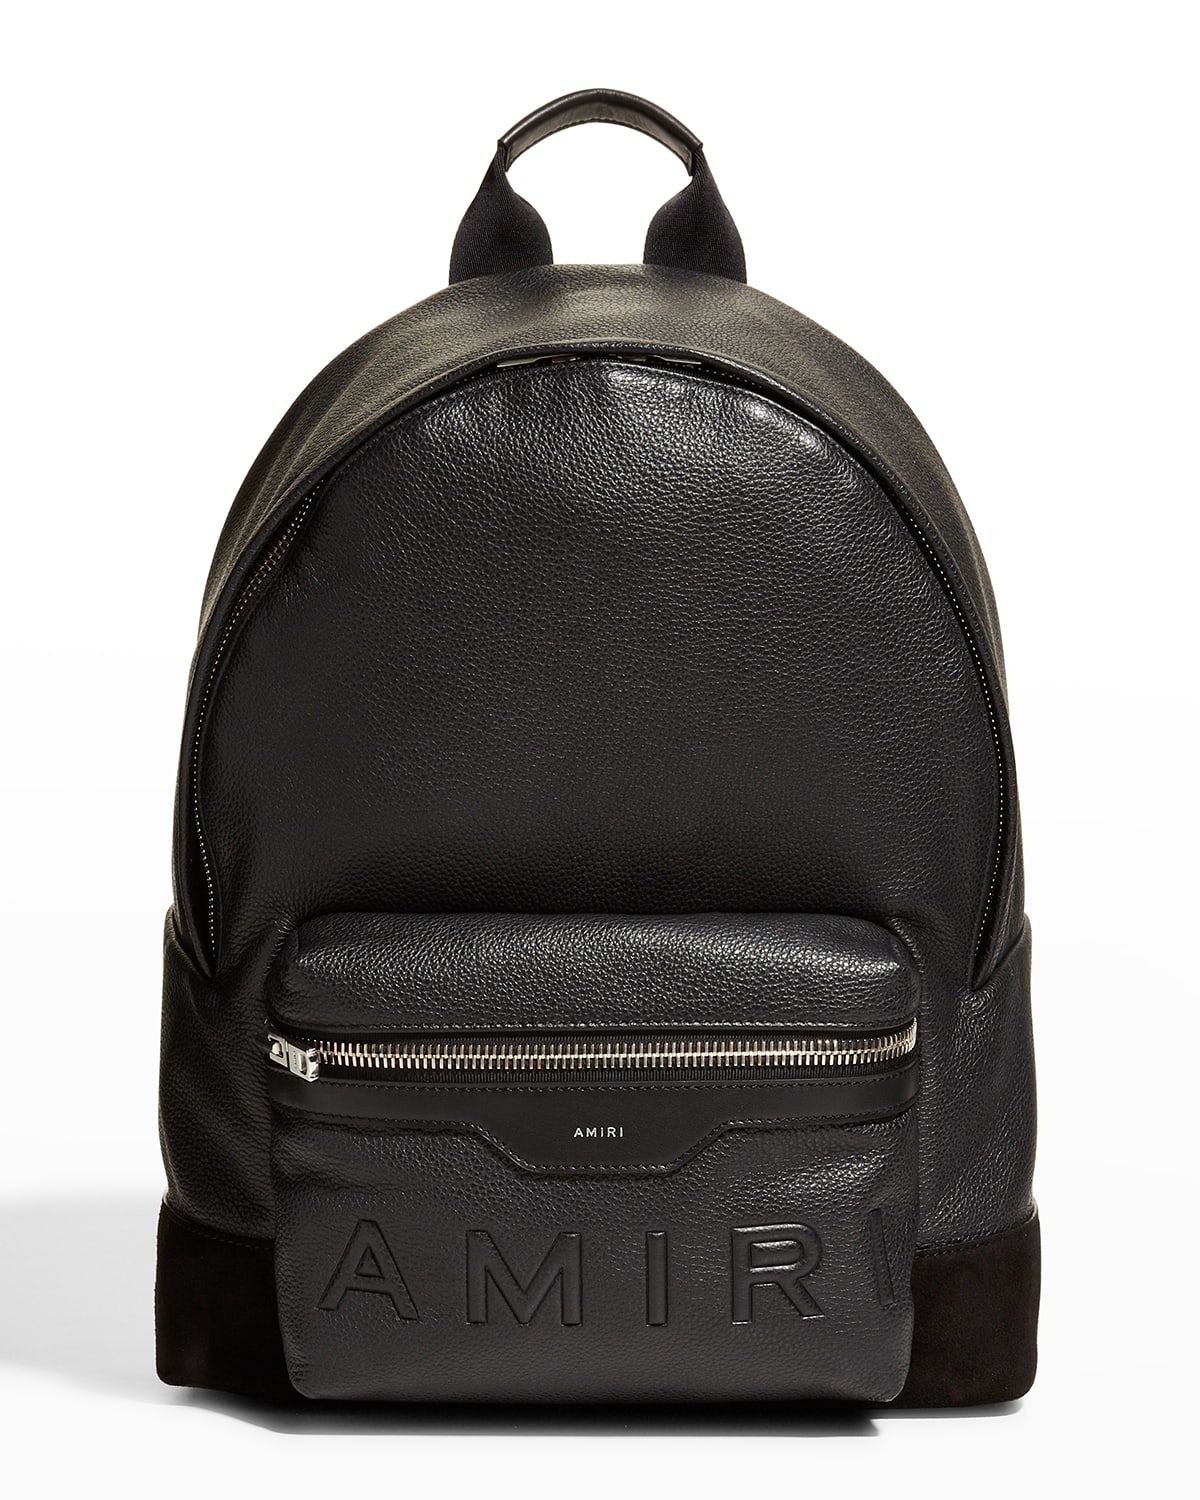 Men's Embossed Leather Backpack